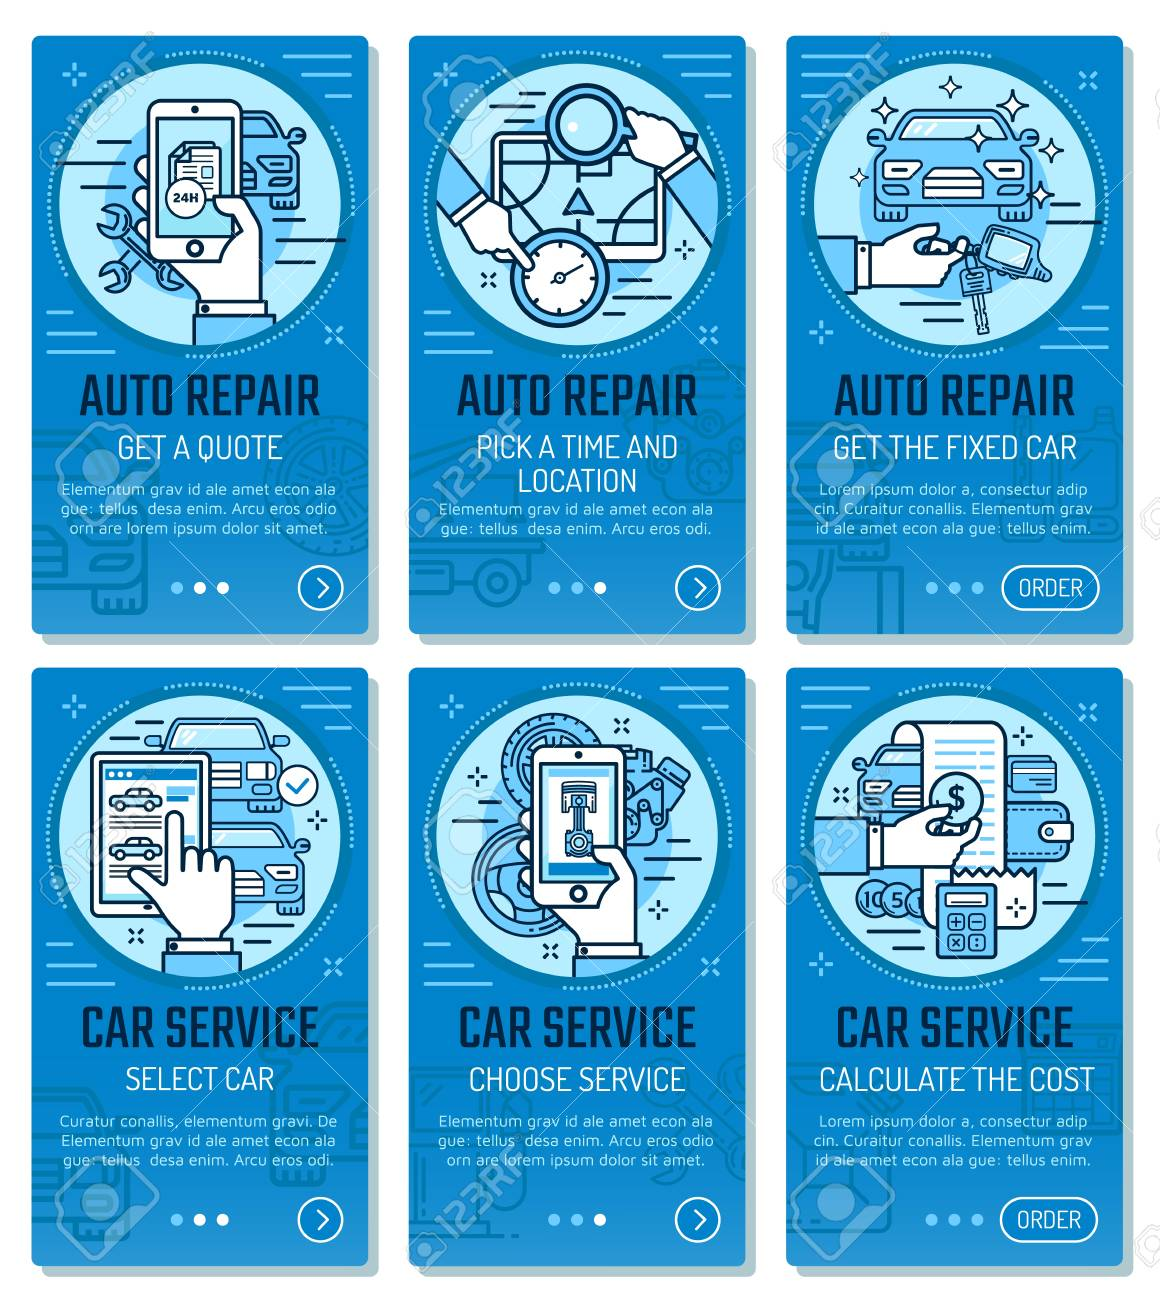 Car Service Or Vehicle Diagnostics And Auto Wash Mobile Application Royalty Free Cliparts Vectors And Stock Illustration Image 127021789